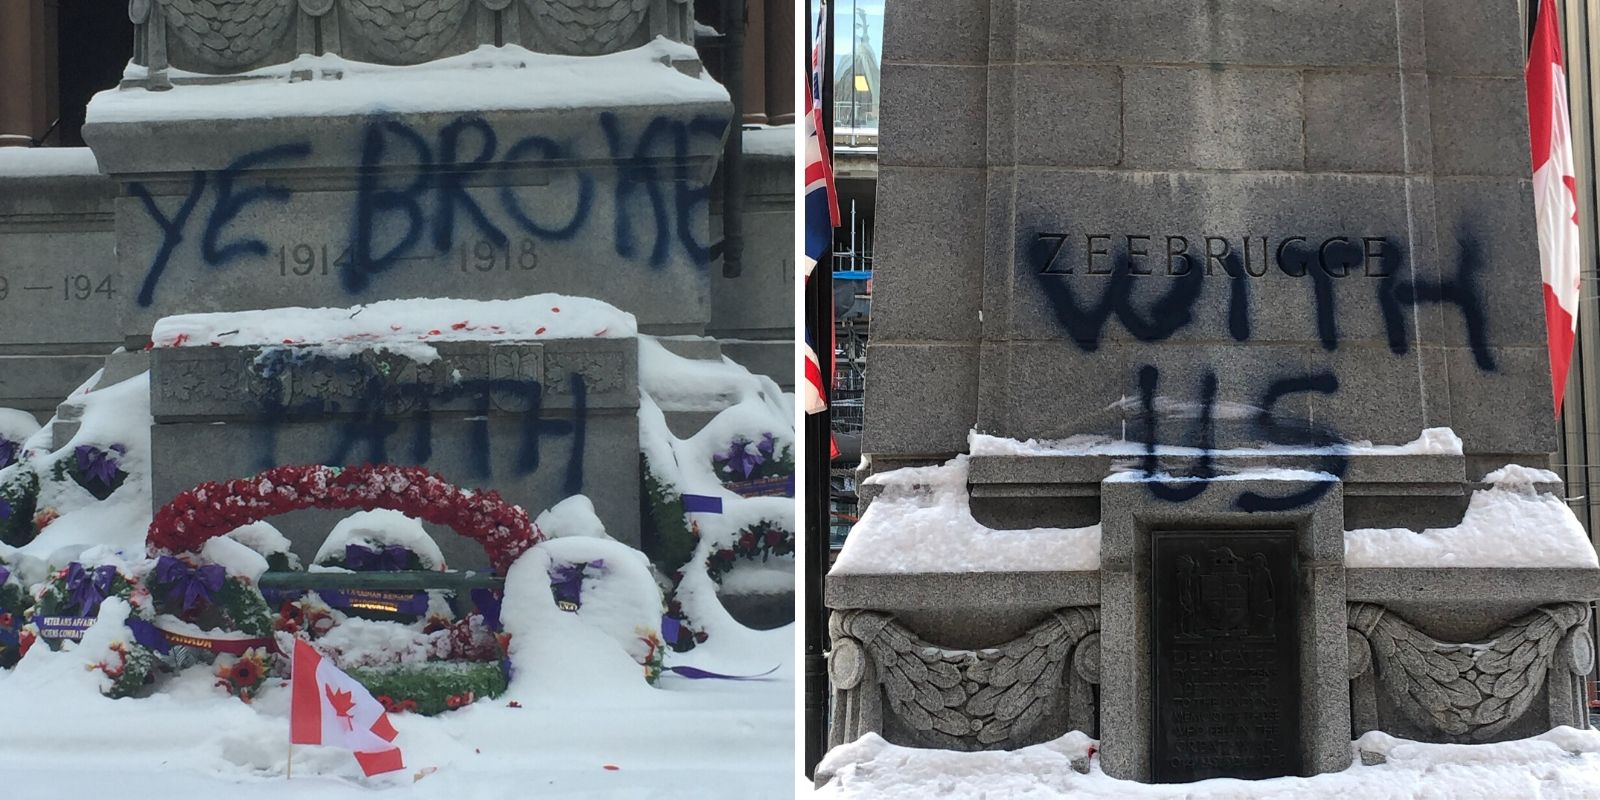 Veterans monument vandalized in Toronto following Remembrance Day